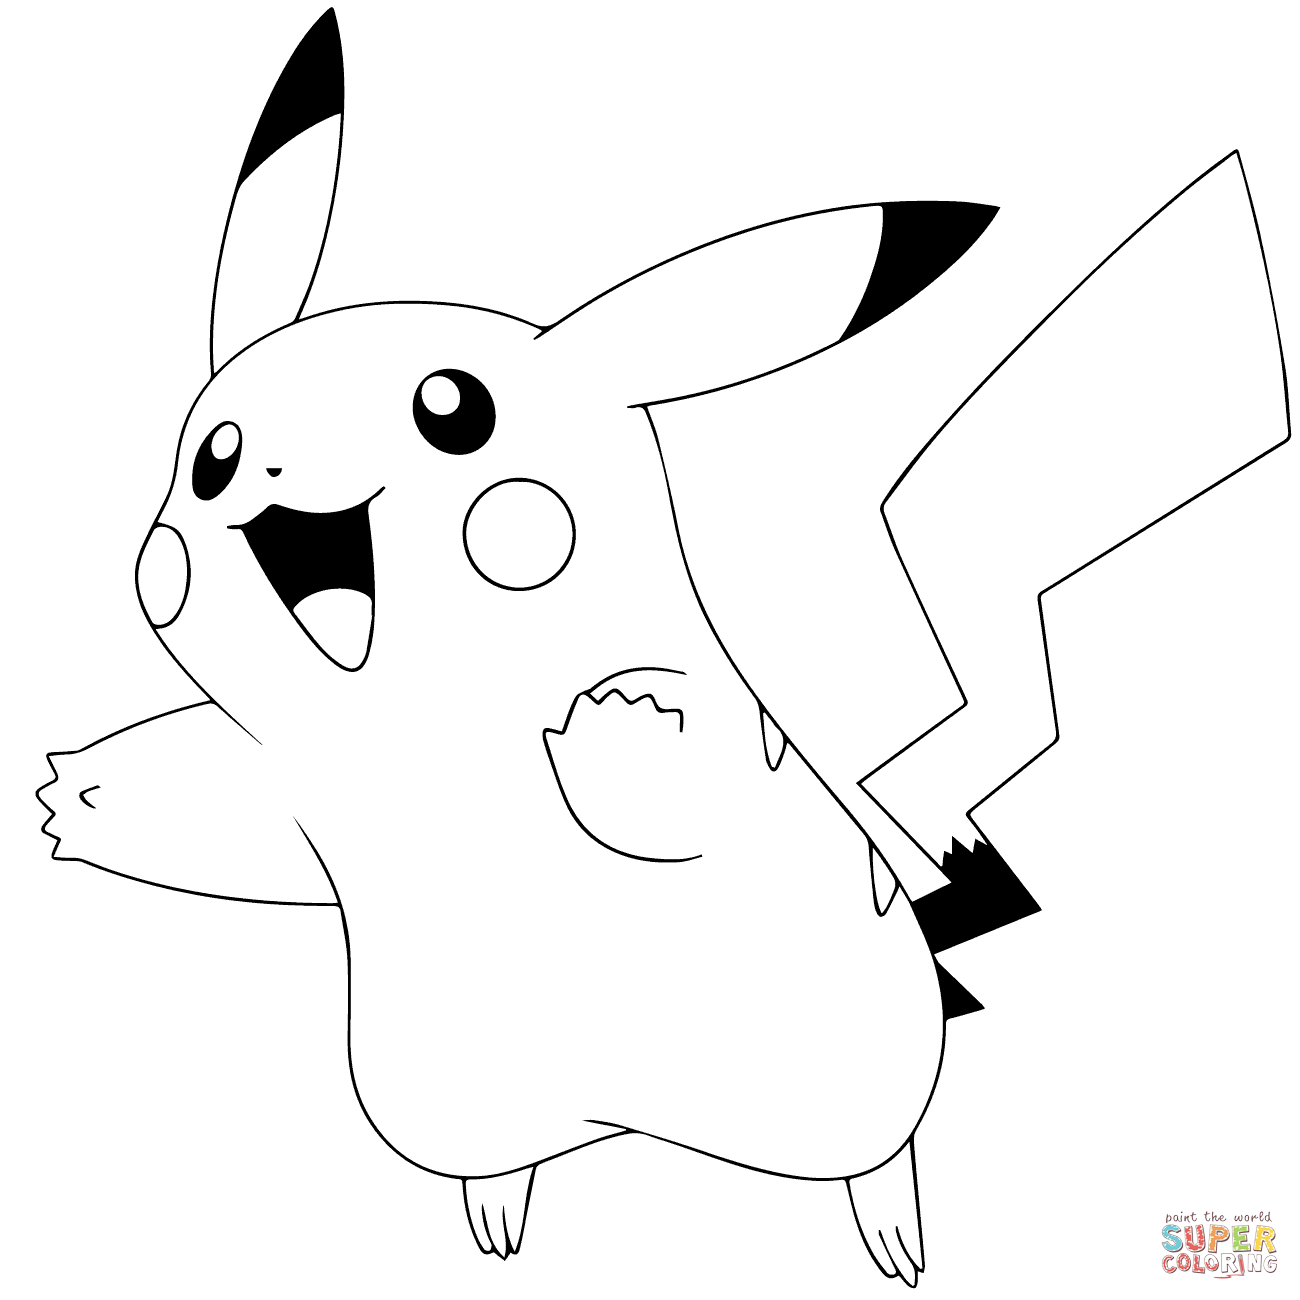 Pikachu coloring pages | Free Printable Pictures